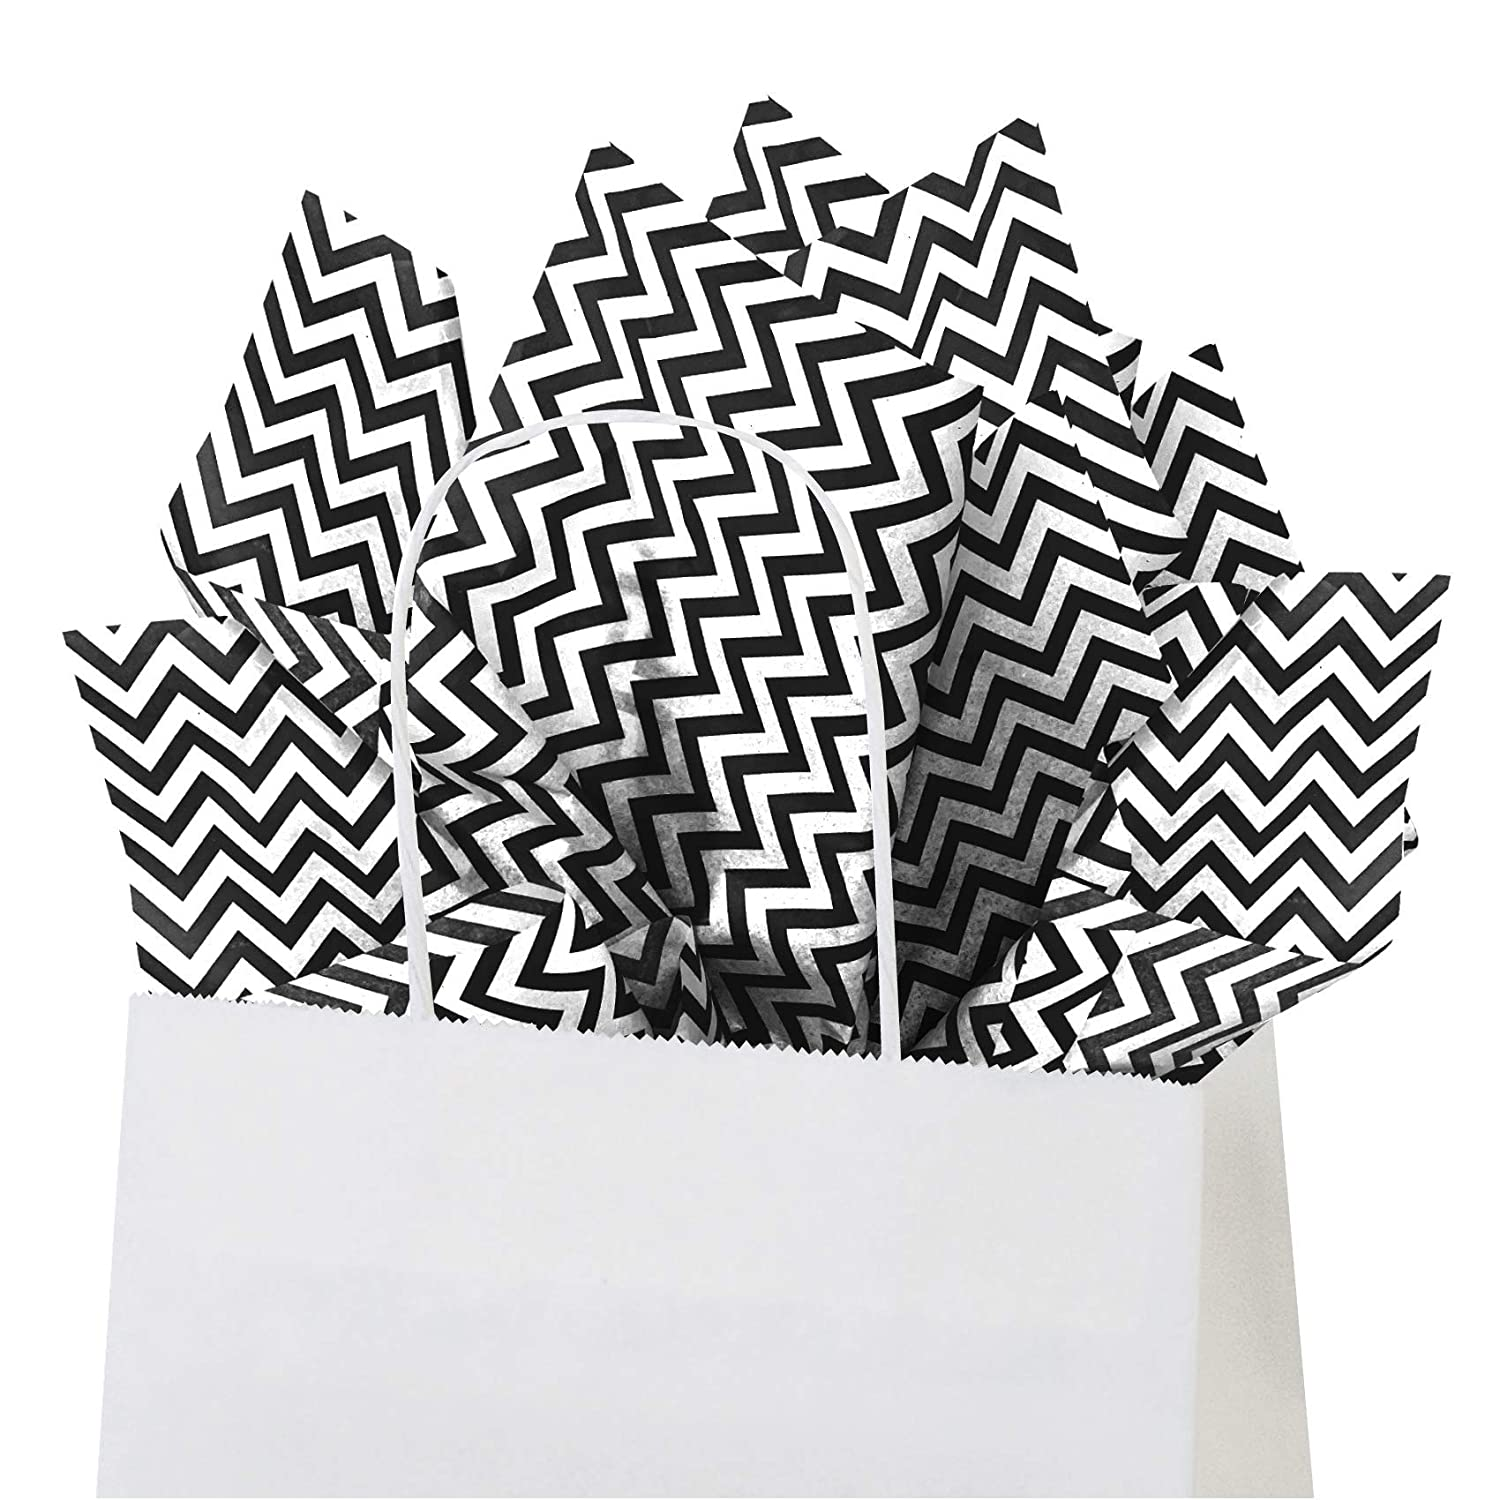 Count 15 Inch X 20 Inch Color 50 Sheets Gray Chevron Flexicore Packaging Gray Chevron Print Gift Wrap Tissue Paper Size